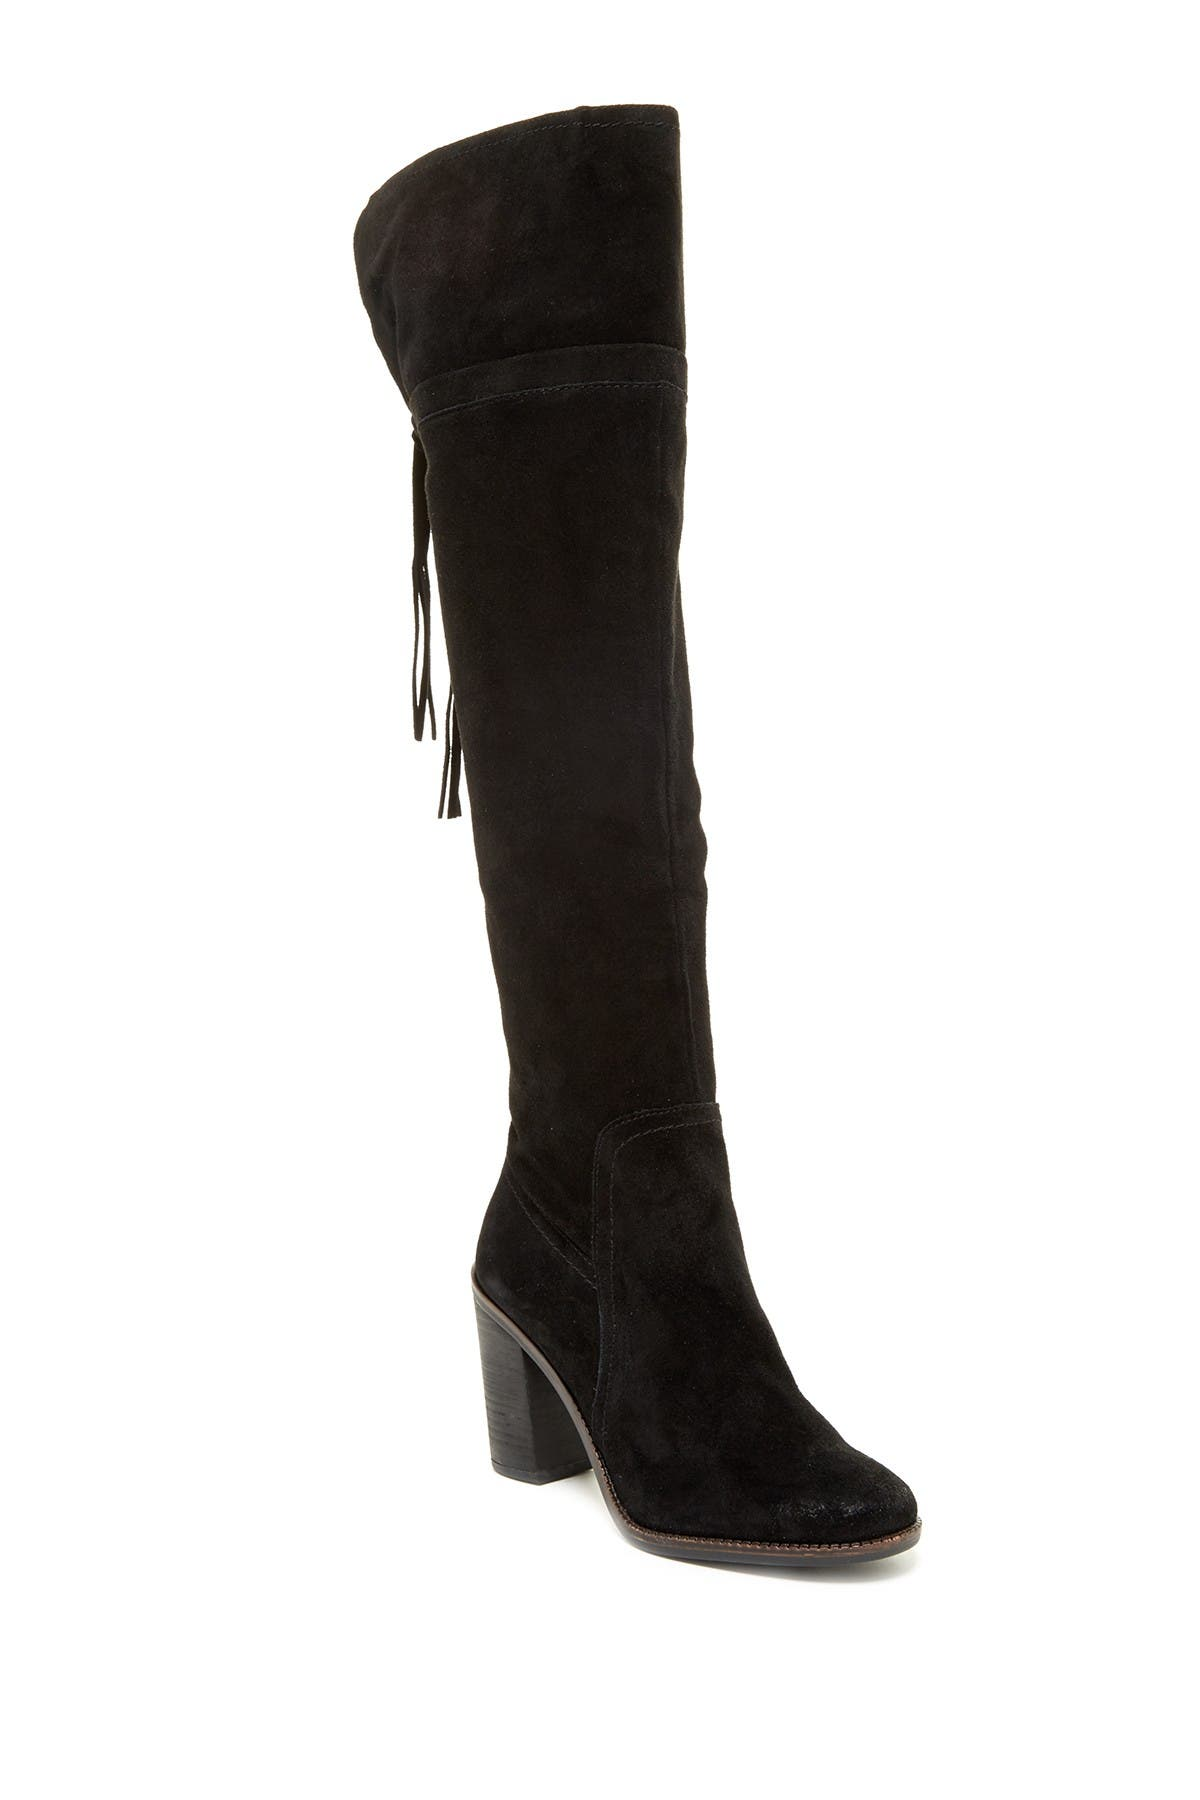 Image of Franco Sarto Ellyn Over-the-Knee Boot